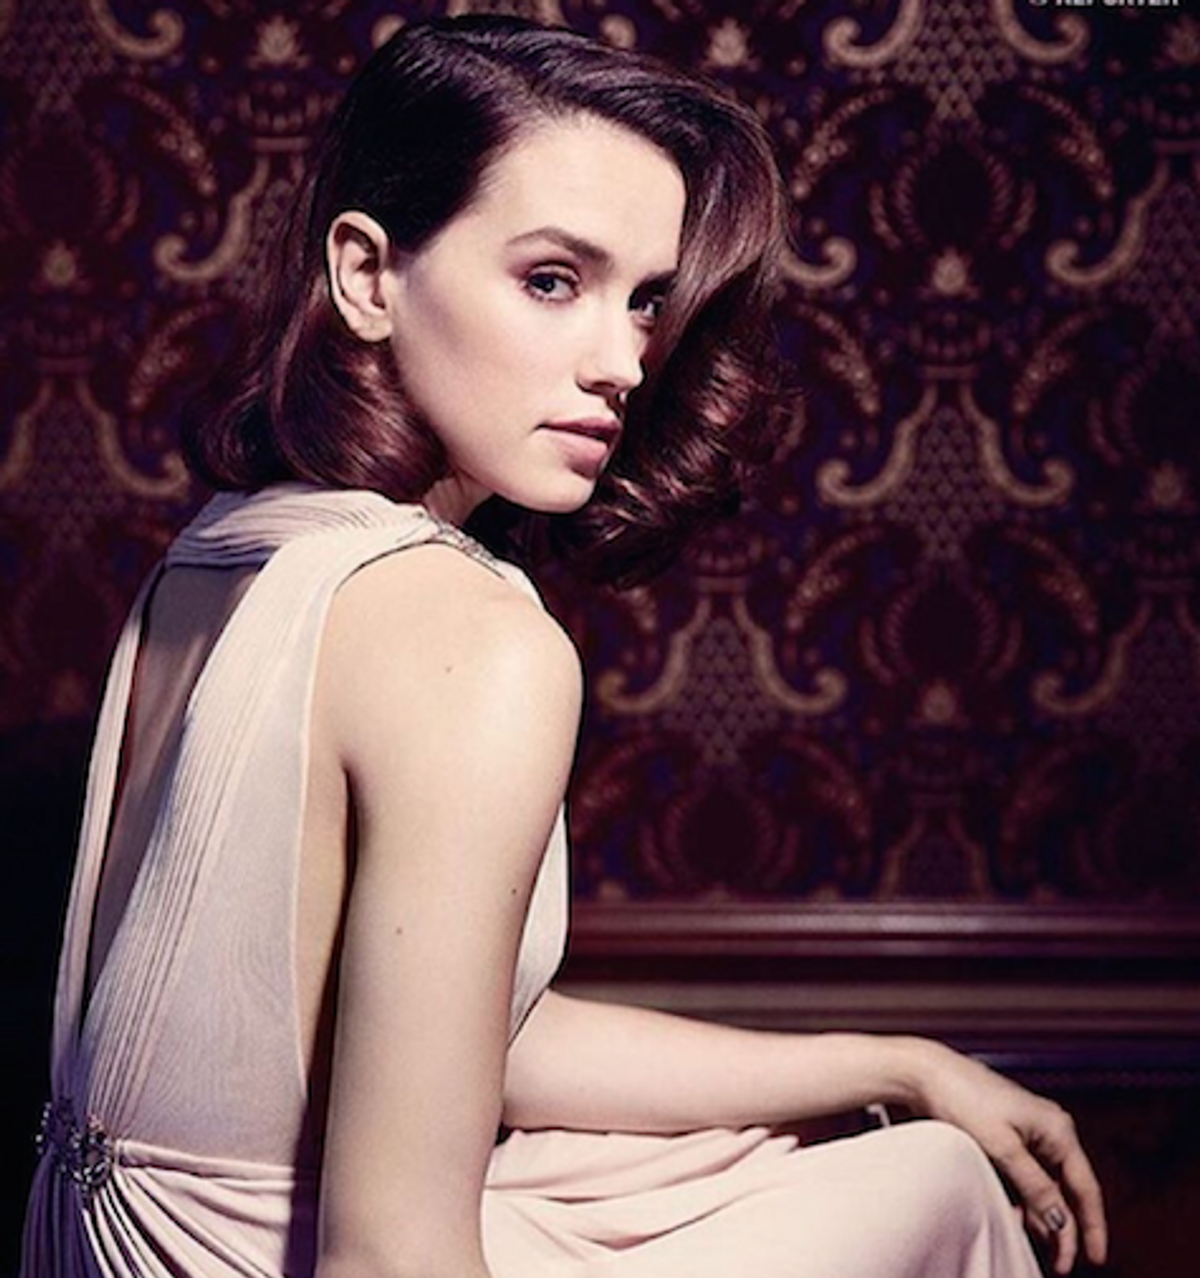 'Star Wars' Actress, Daisy Ridley, Defends Herself Against Body Shamers